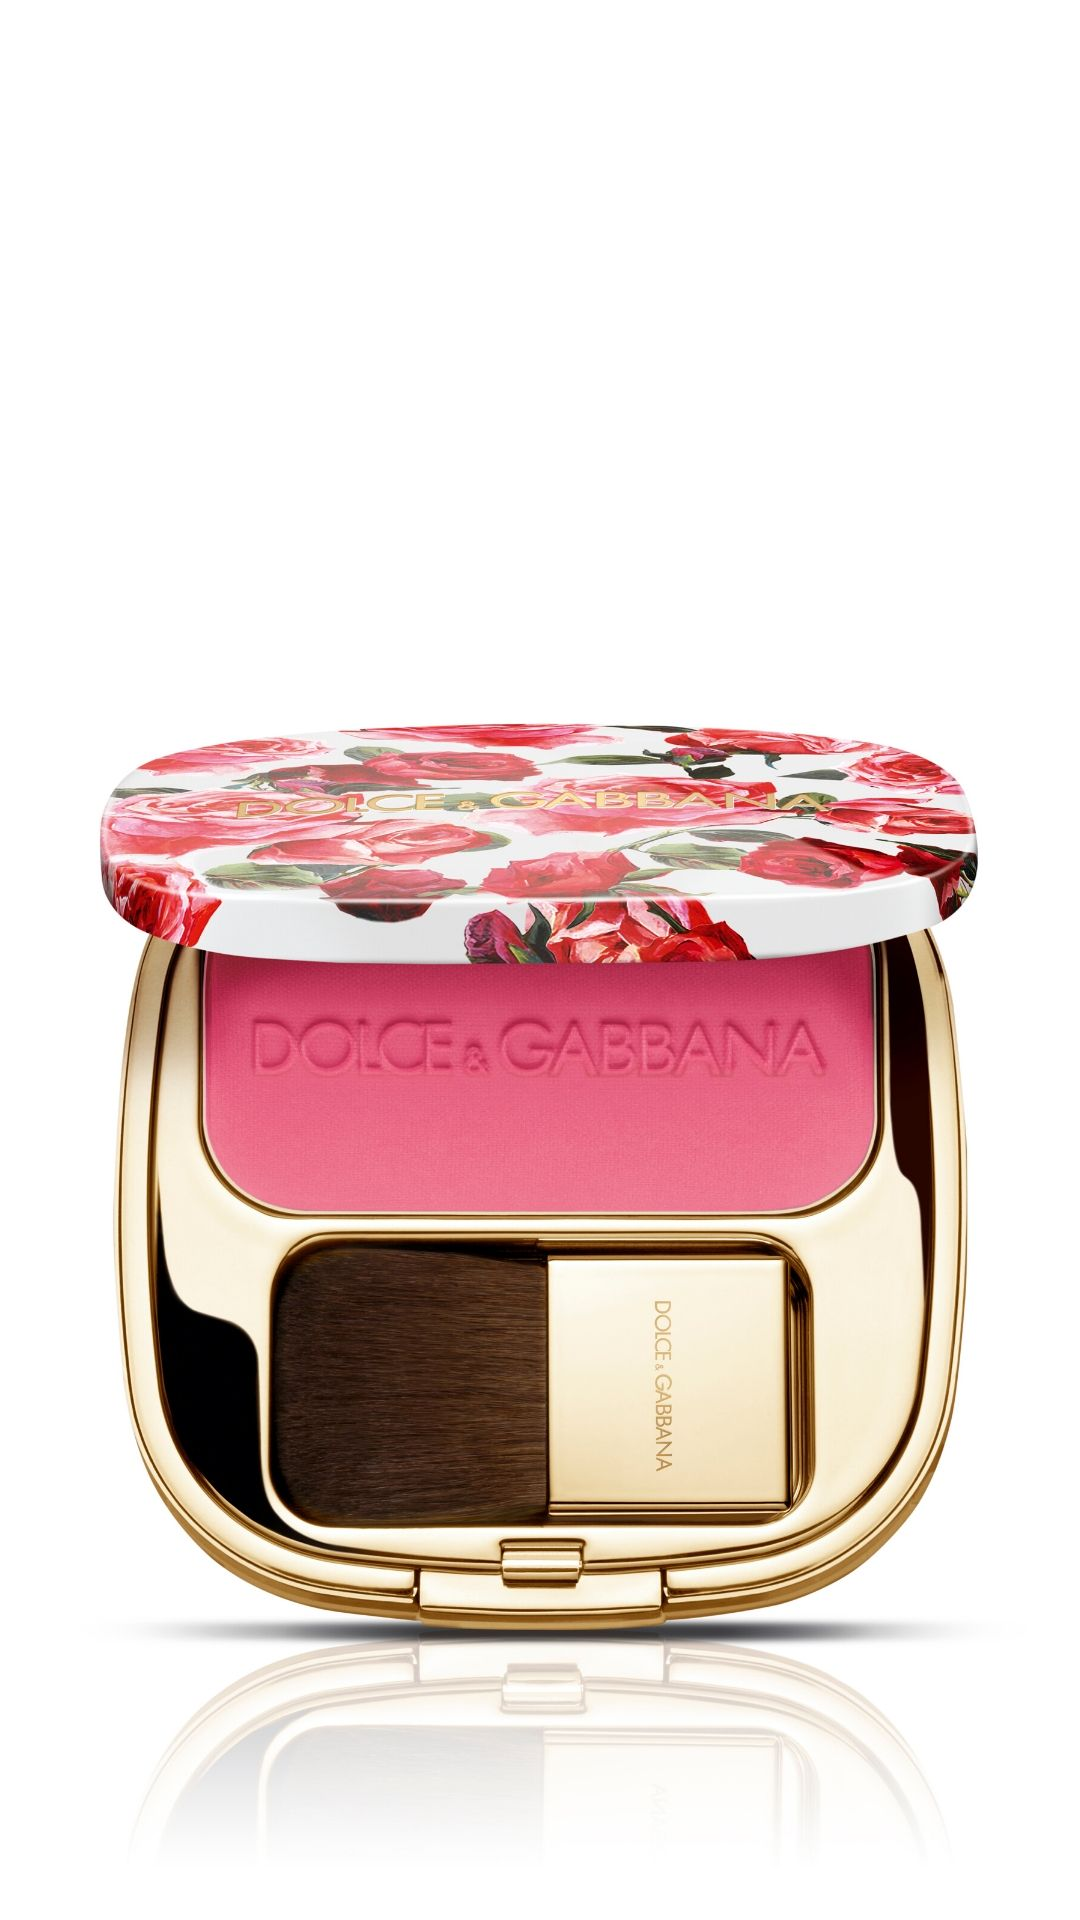 beauty, beauty list, make up, dolce and gabbana, D&G beauty, blush, pink, 2020